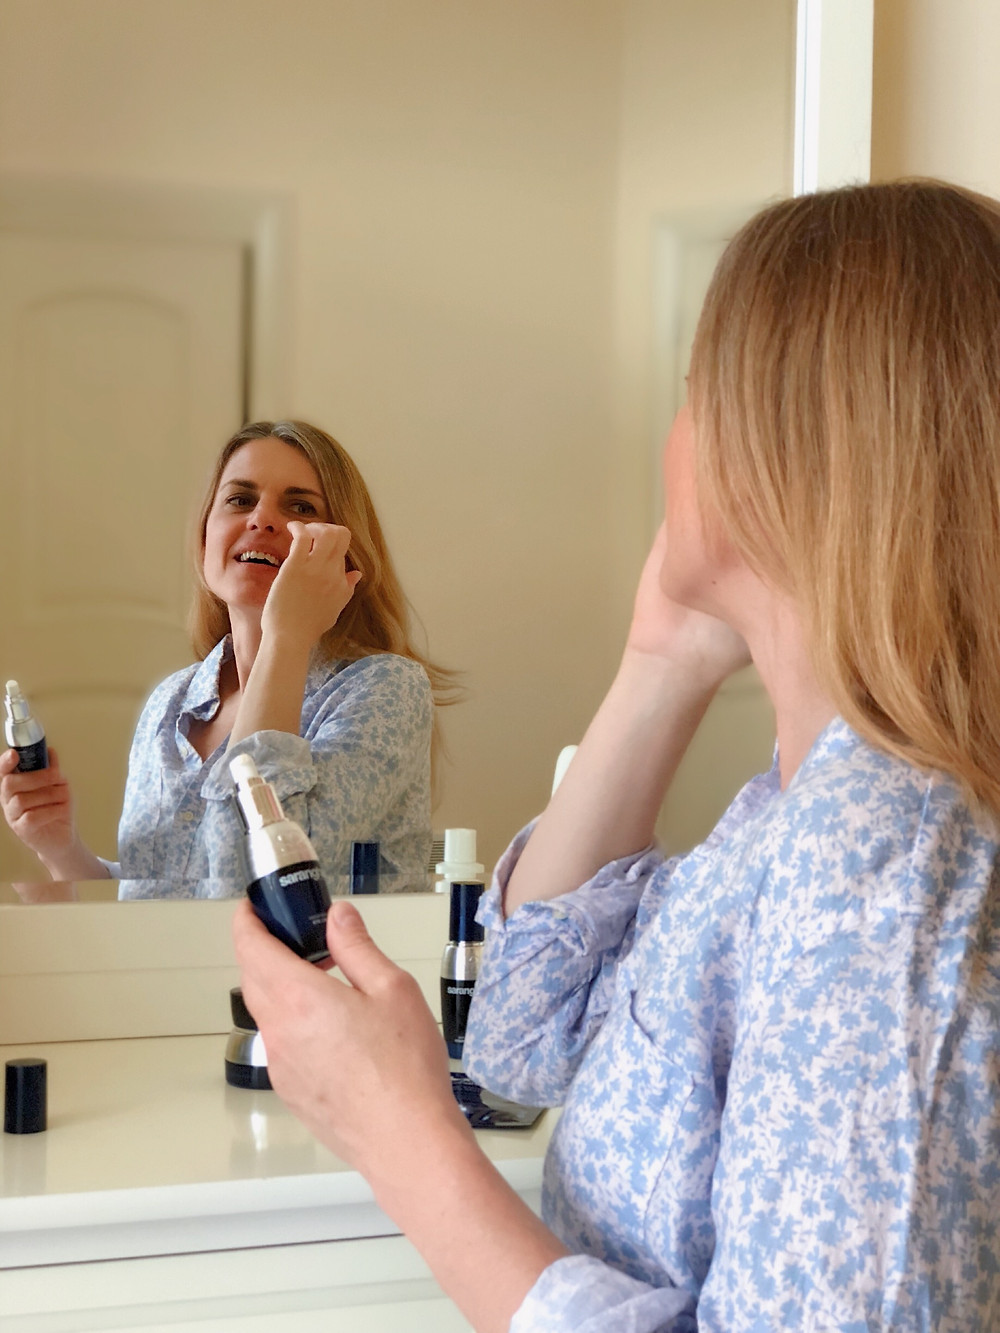 blond woman applying face cream